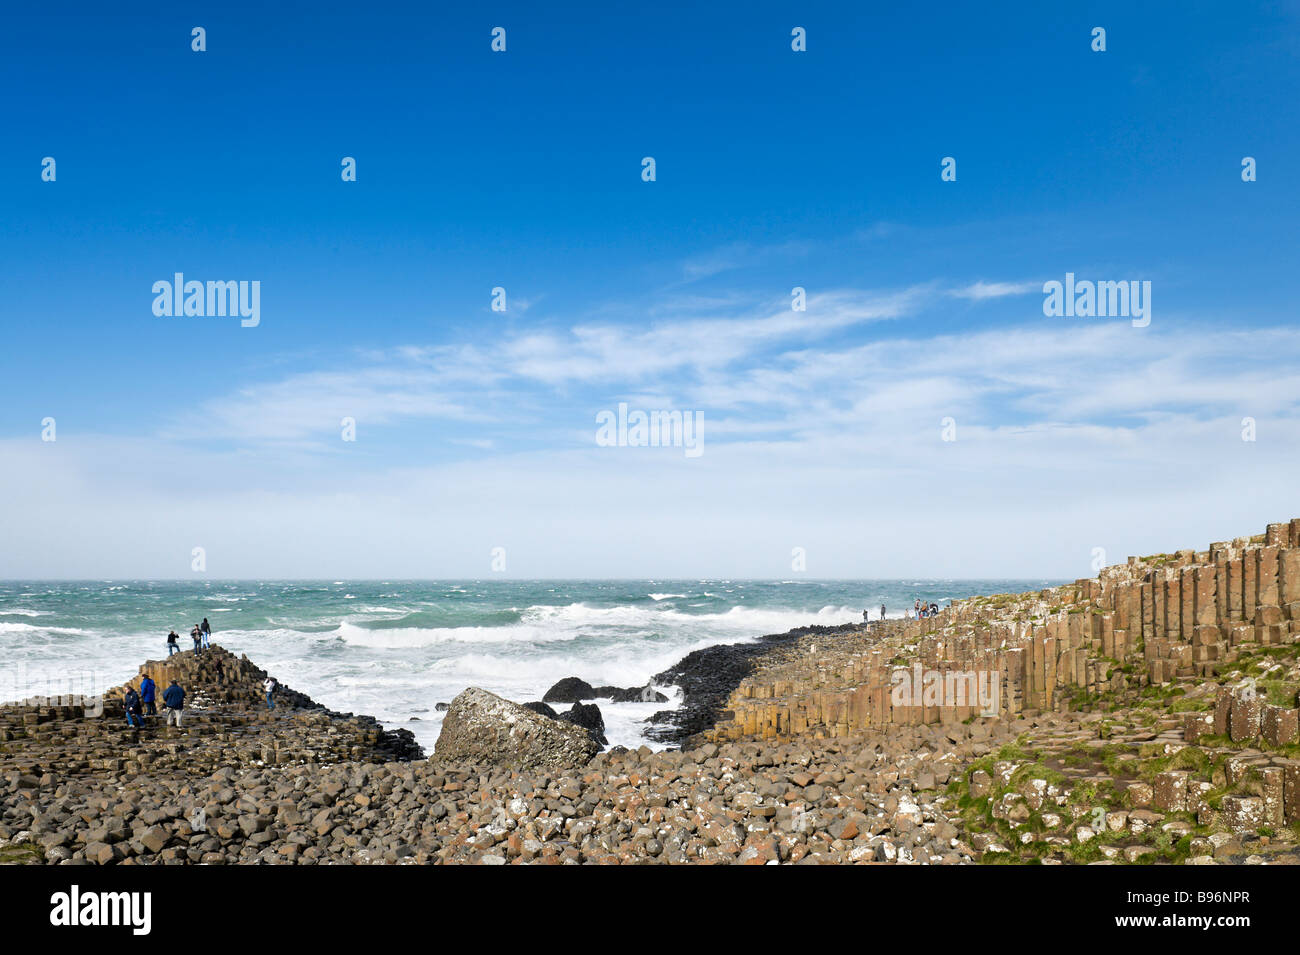 The coast at the Giant's Causeway, North Antrim Coast, County Antrim, Northern Ireland - Stock Image